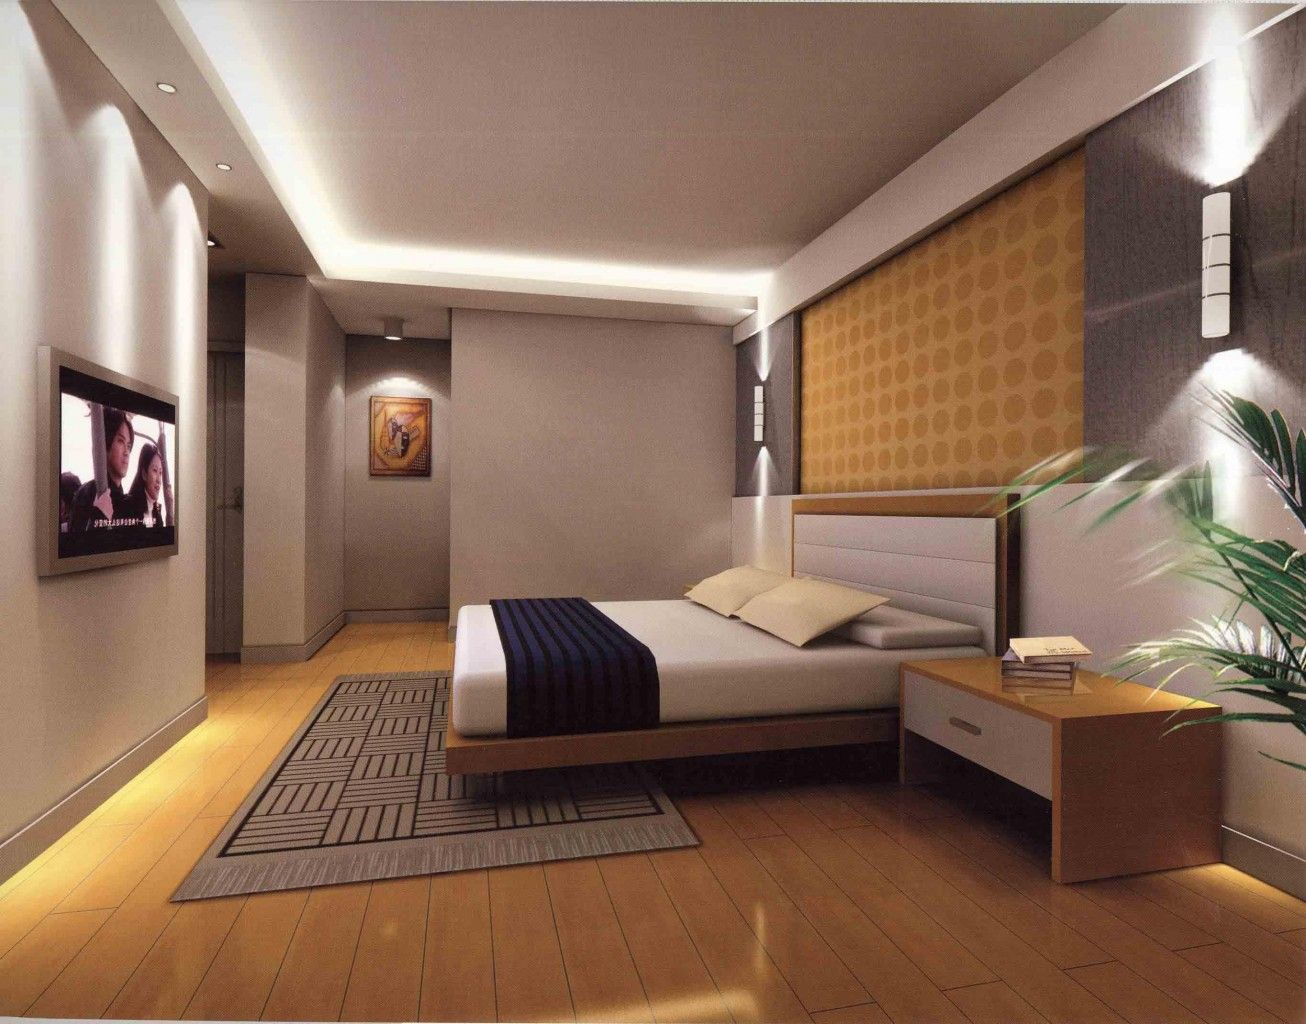 Awesome master bedroom interior design ideas with modern for Master bedroom interior